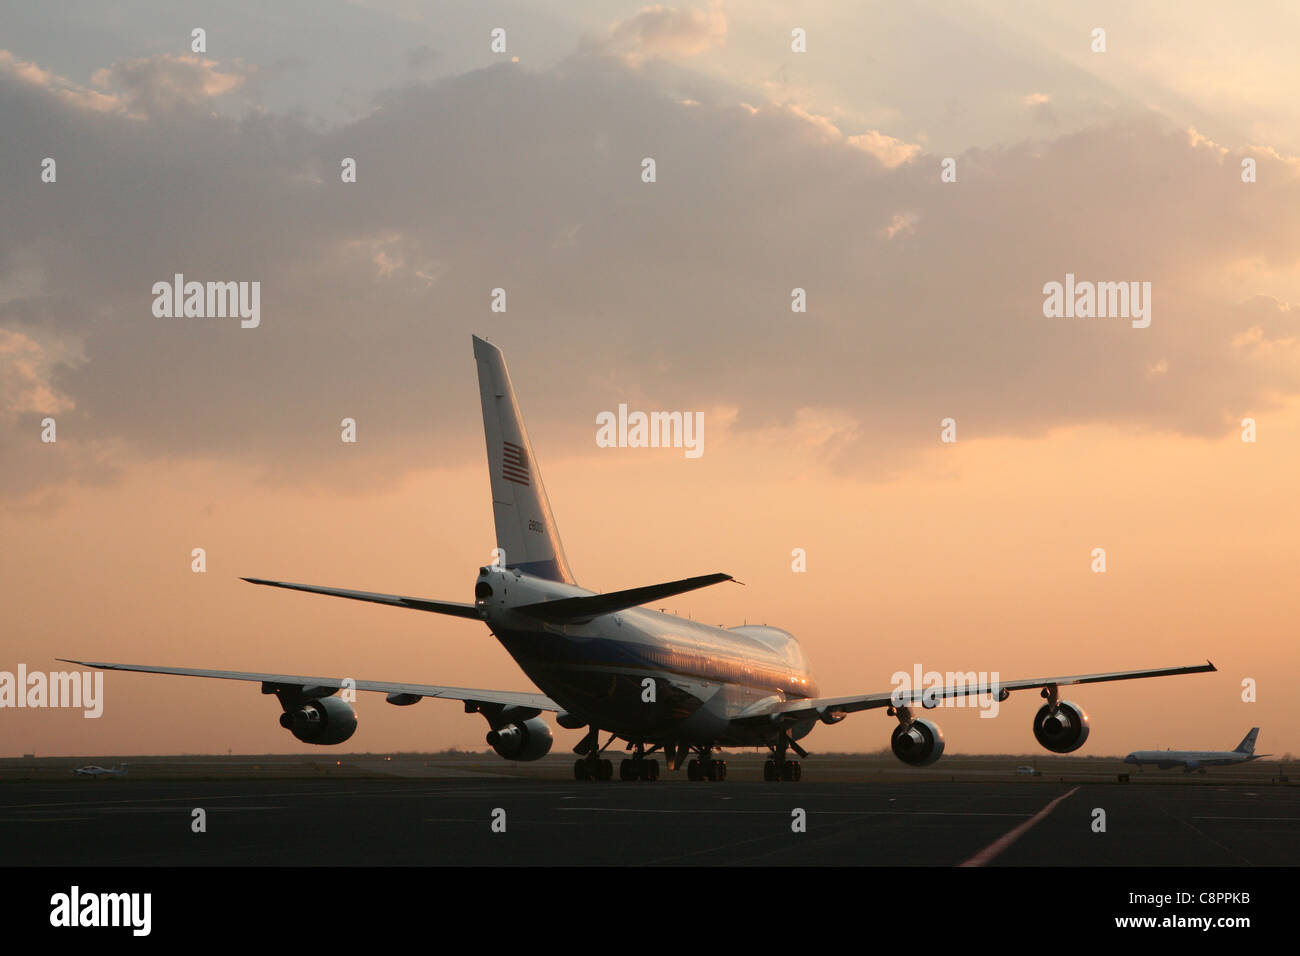 Air Force One aircraft at the Ruzyne Airport in Prague, Czech Republic on 4 April 2009. - Stock Image